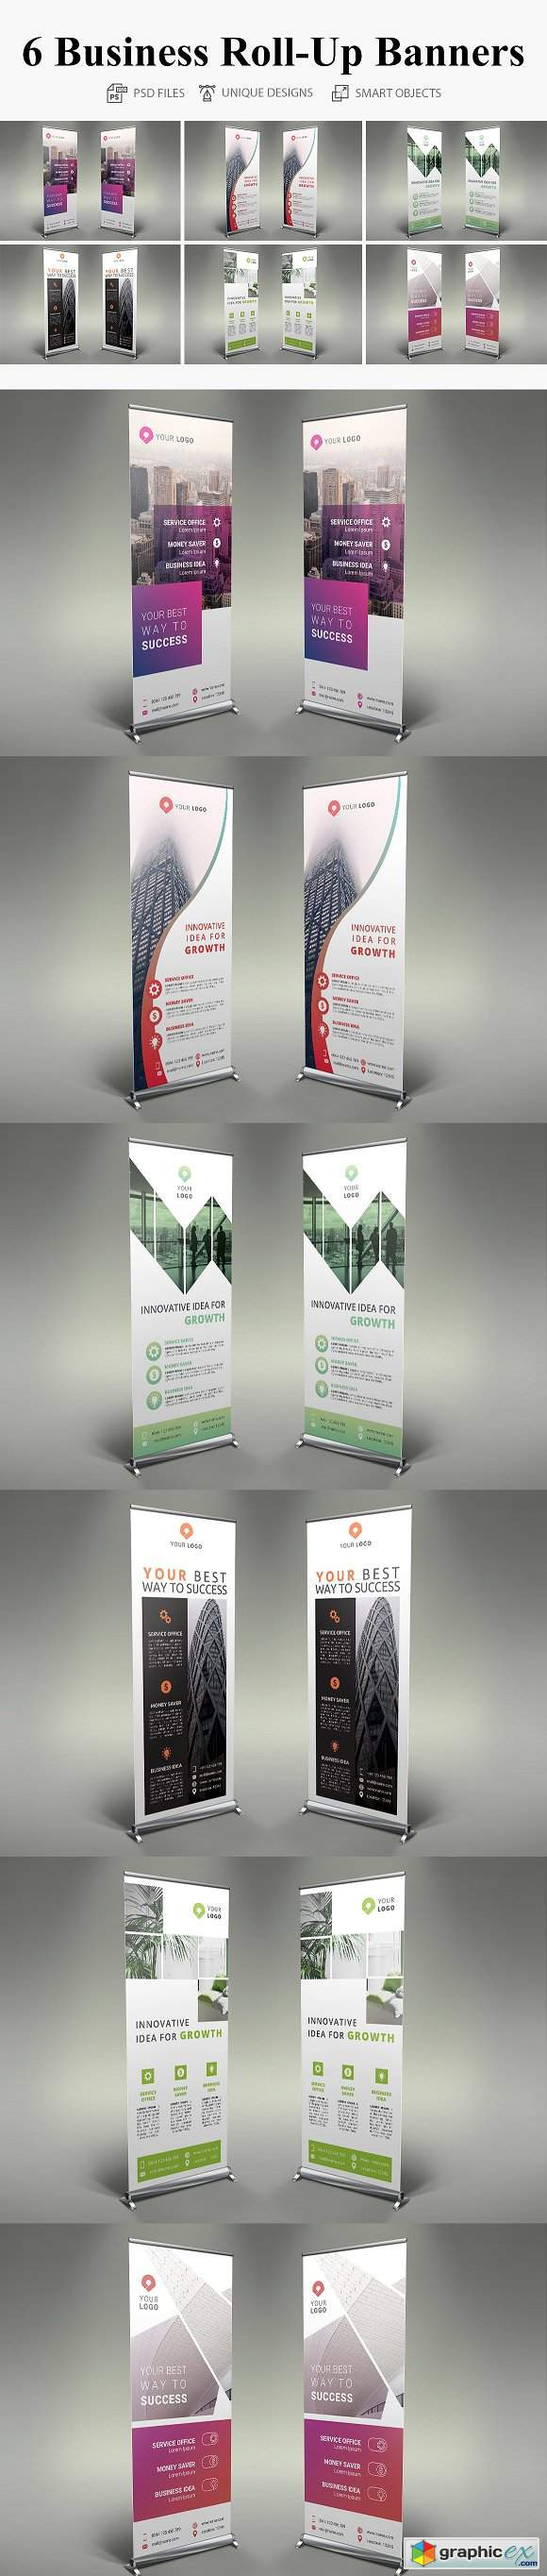 6 Business Roll Up Banners